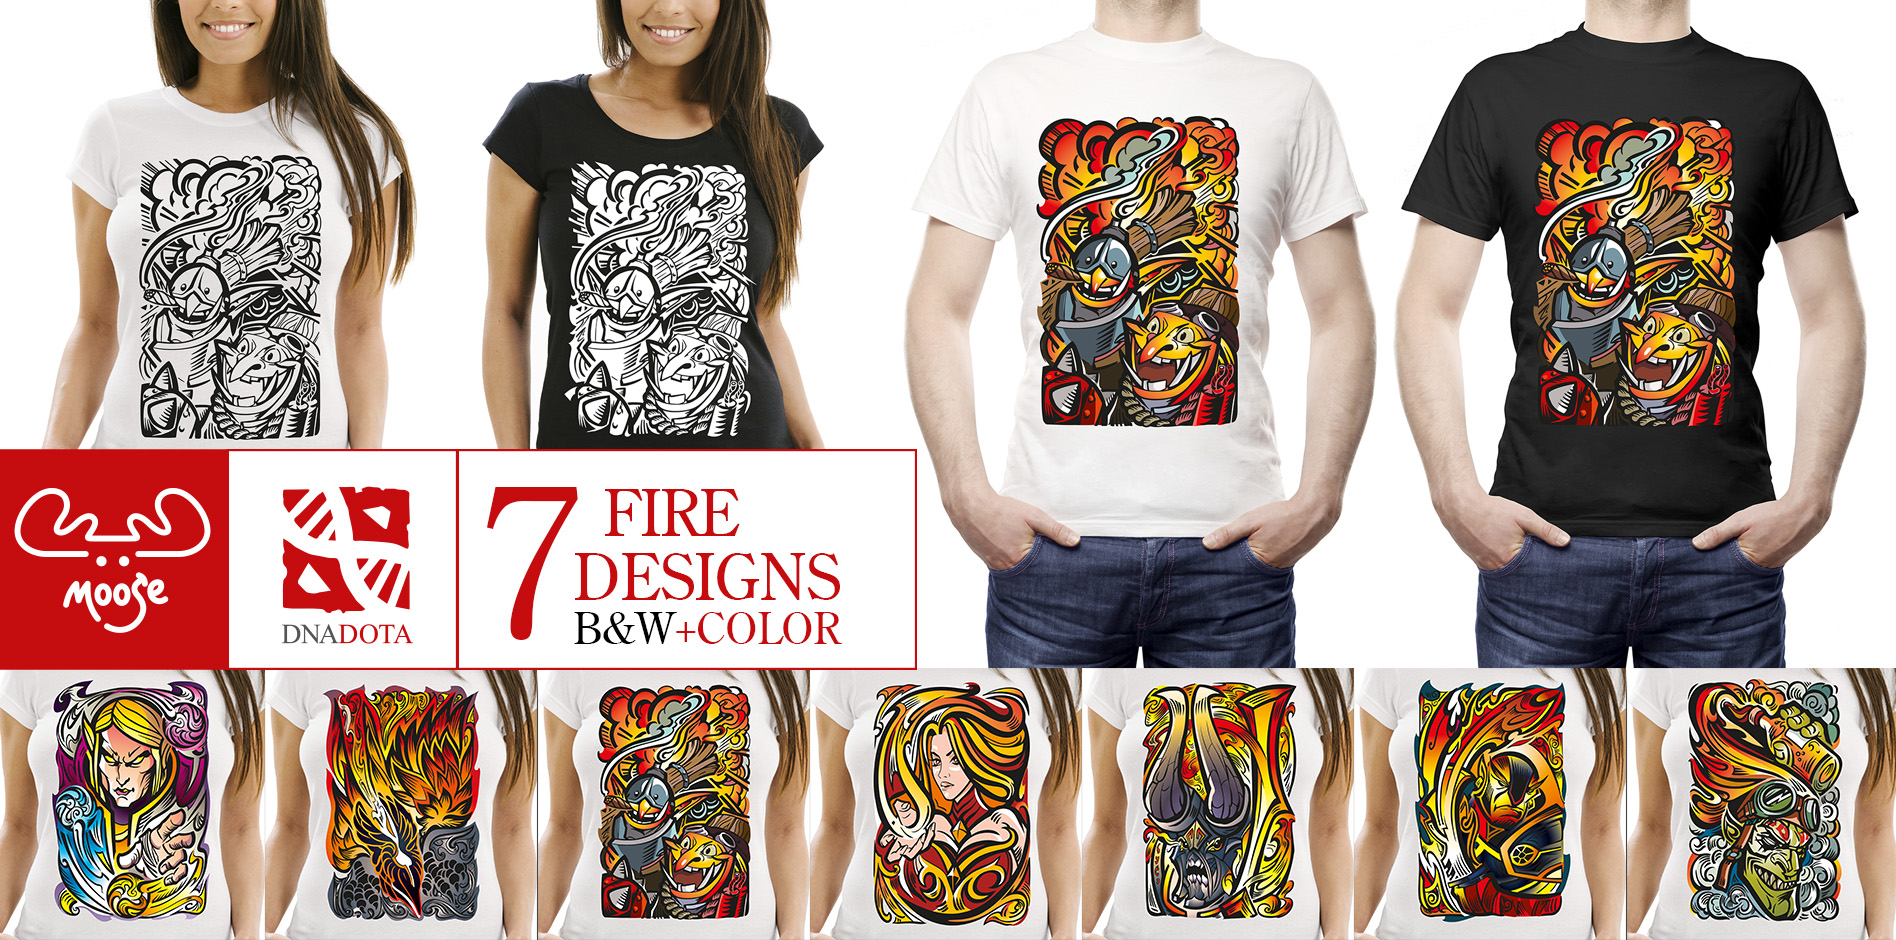 Steam Workshop 7 Fire T Shirt Designs From Moosednadota